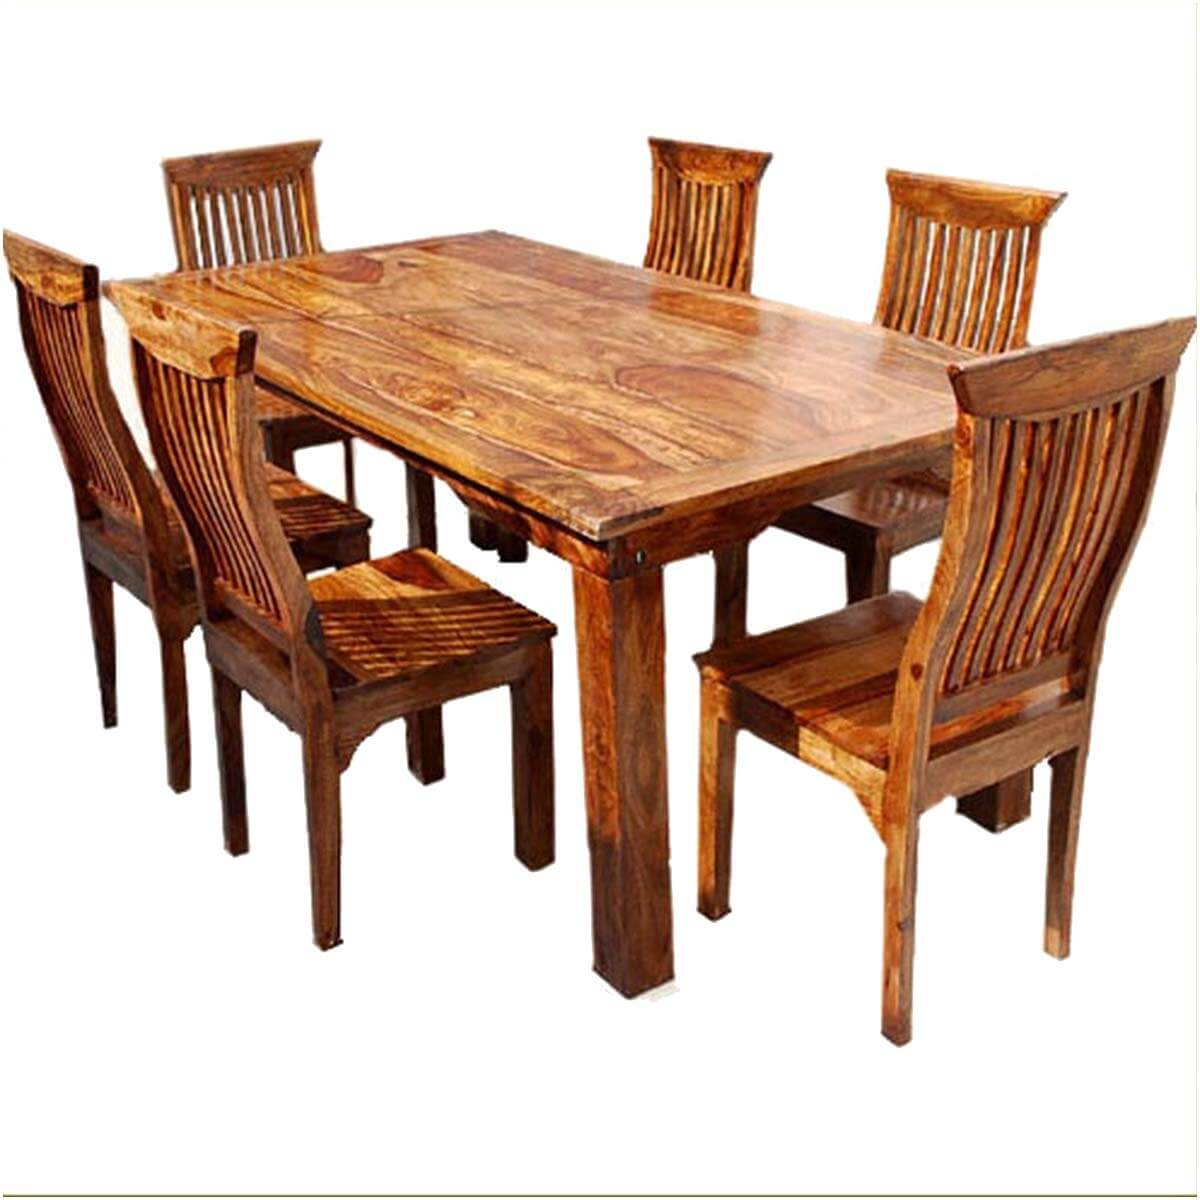 Solid Wood Kitchen Tables: Dallas Ranch Solid Wood Rustic Dining Table Chairs & Hutch Set